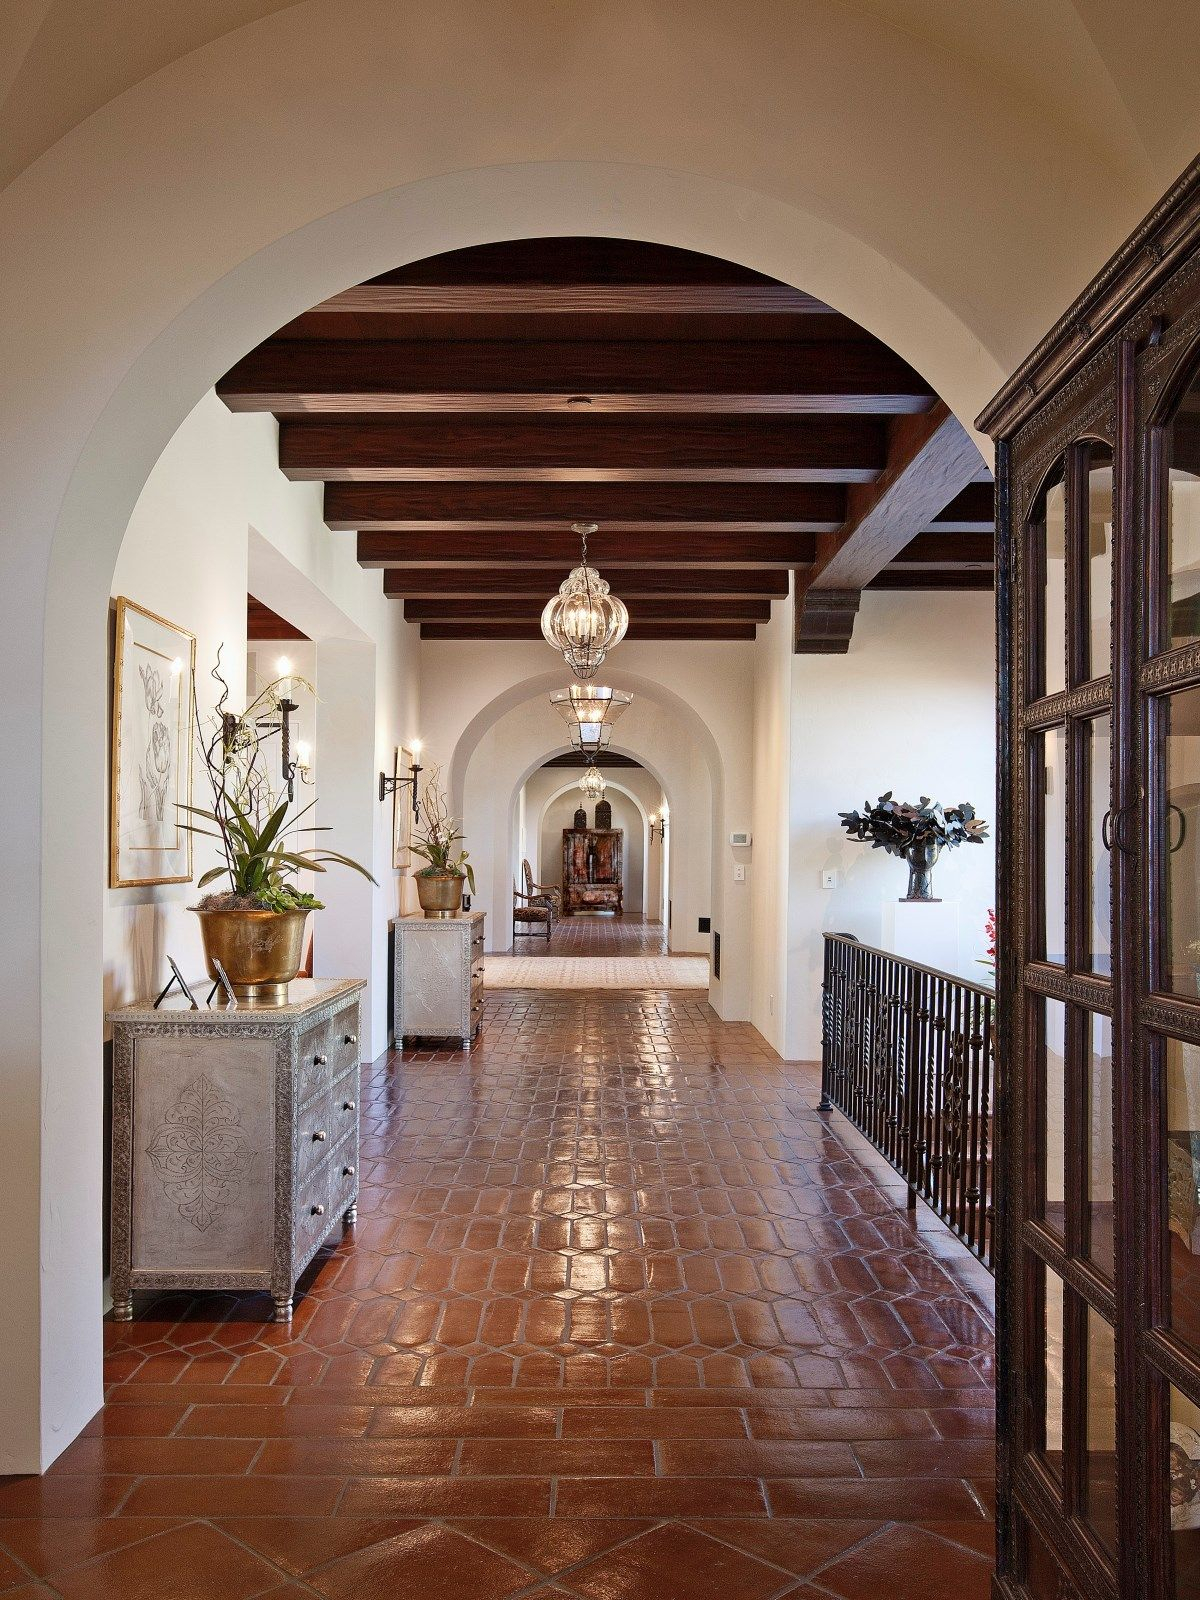 Photo of Santa Barbara, CA Luxury Real Estate & Homes for Sale | Sotheby's Realty